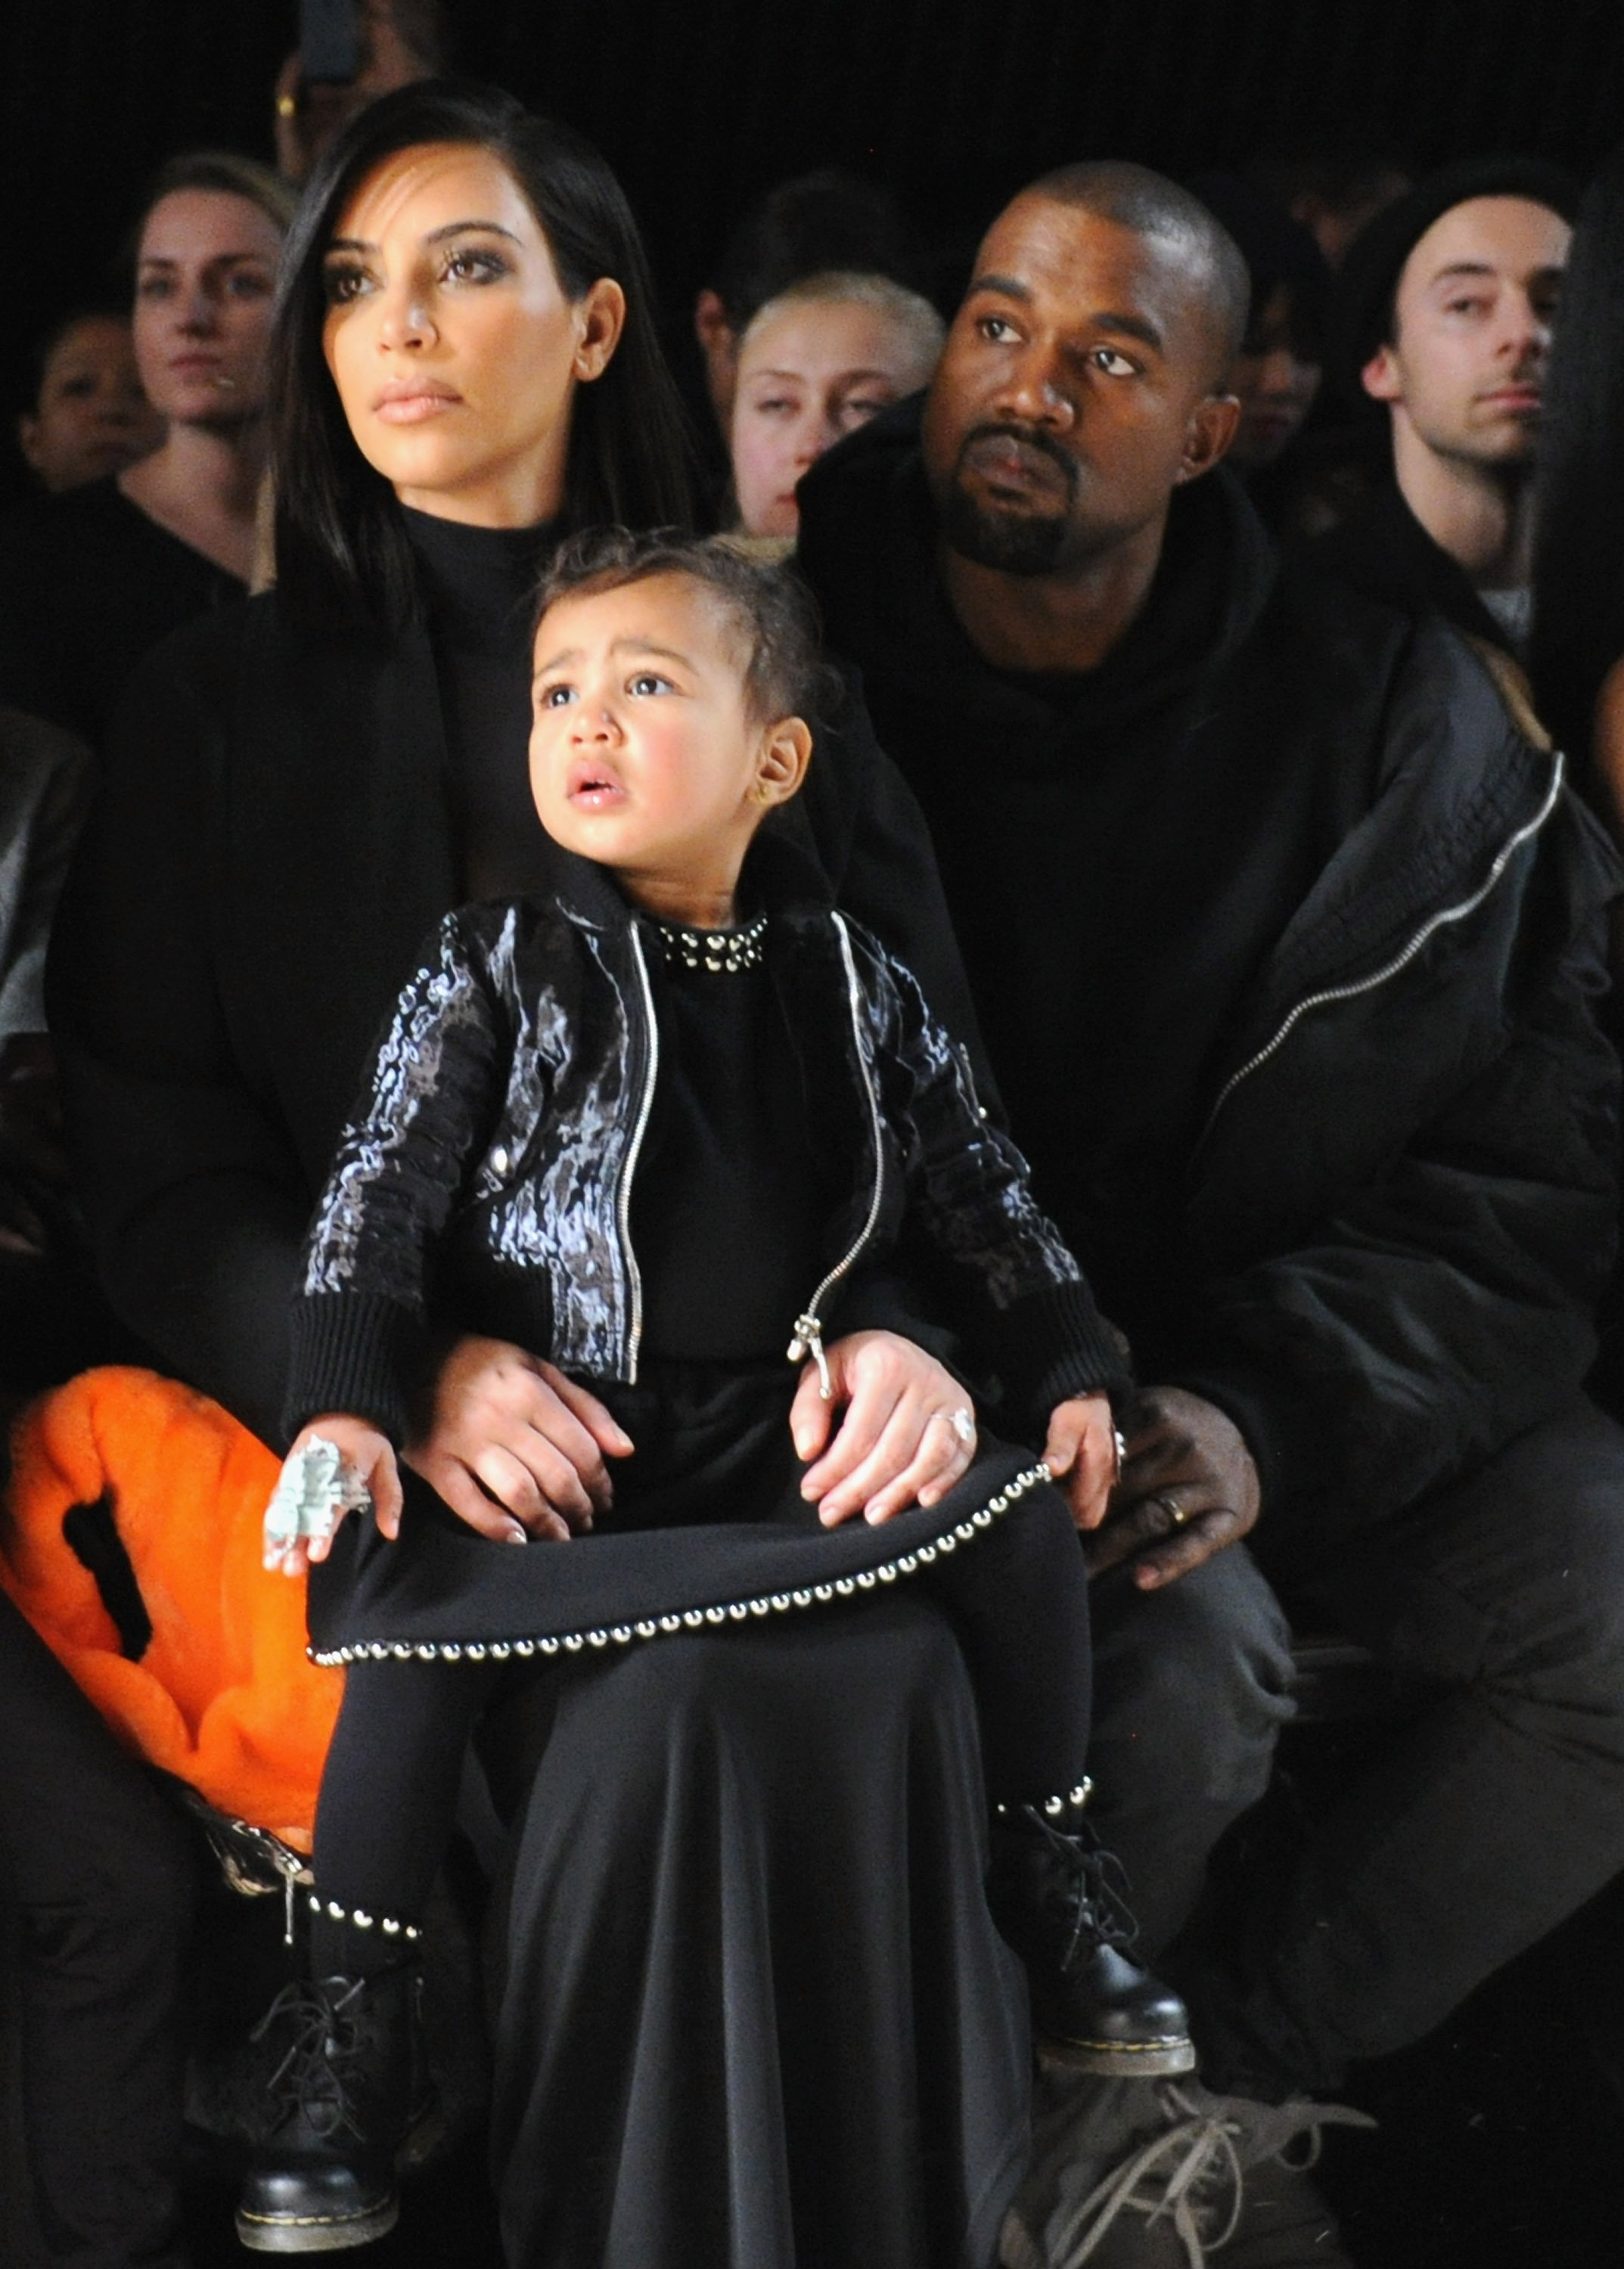 Kim Kardashian, North West and Kanye West attend the Alexander Wang Fashion Show during Mercedes-Benz Fashion Week Fall 2015 at Pier 94 on February 14, 2015, in New York City. | Source: Getty Images.